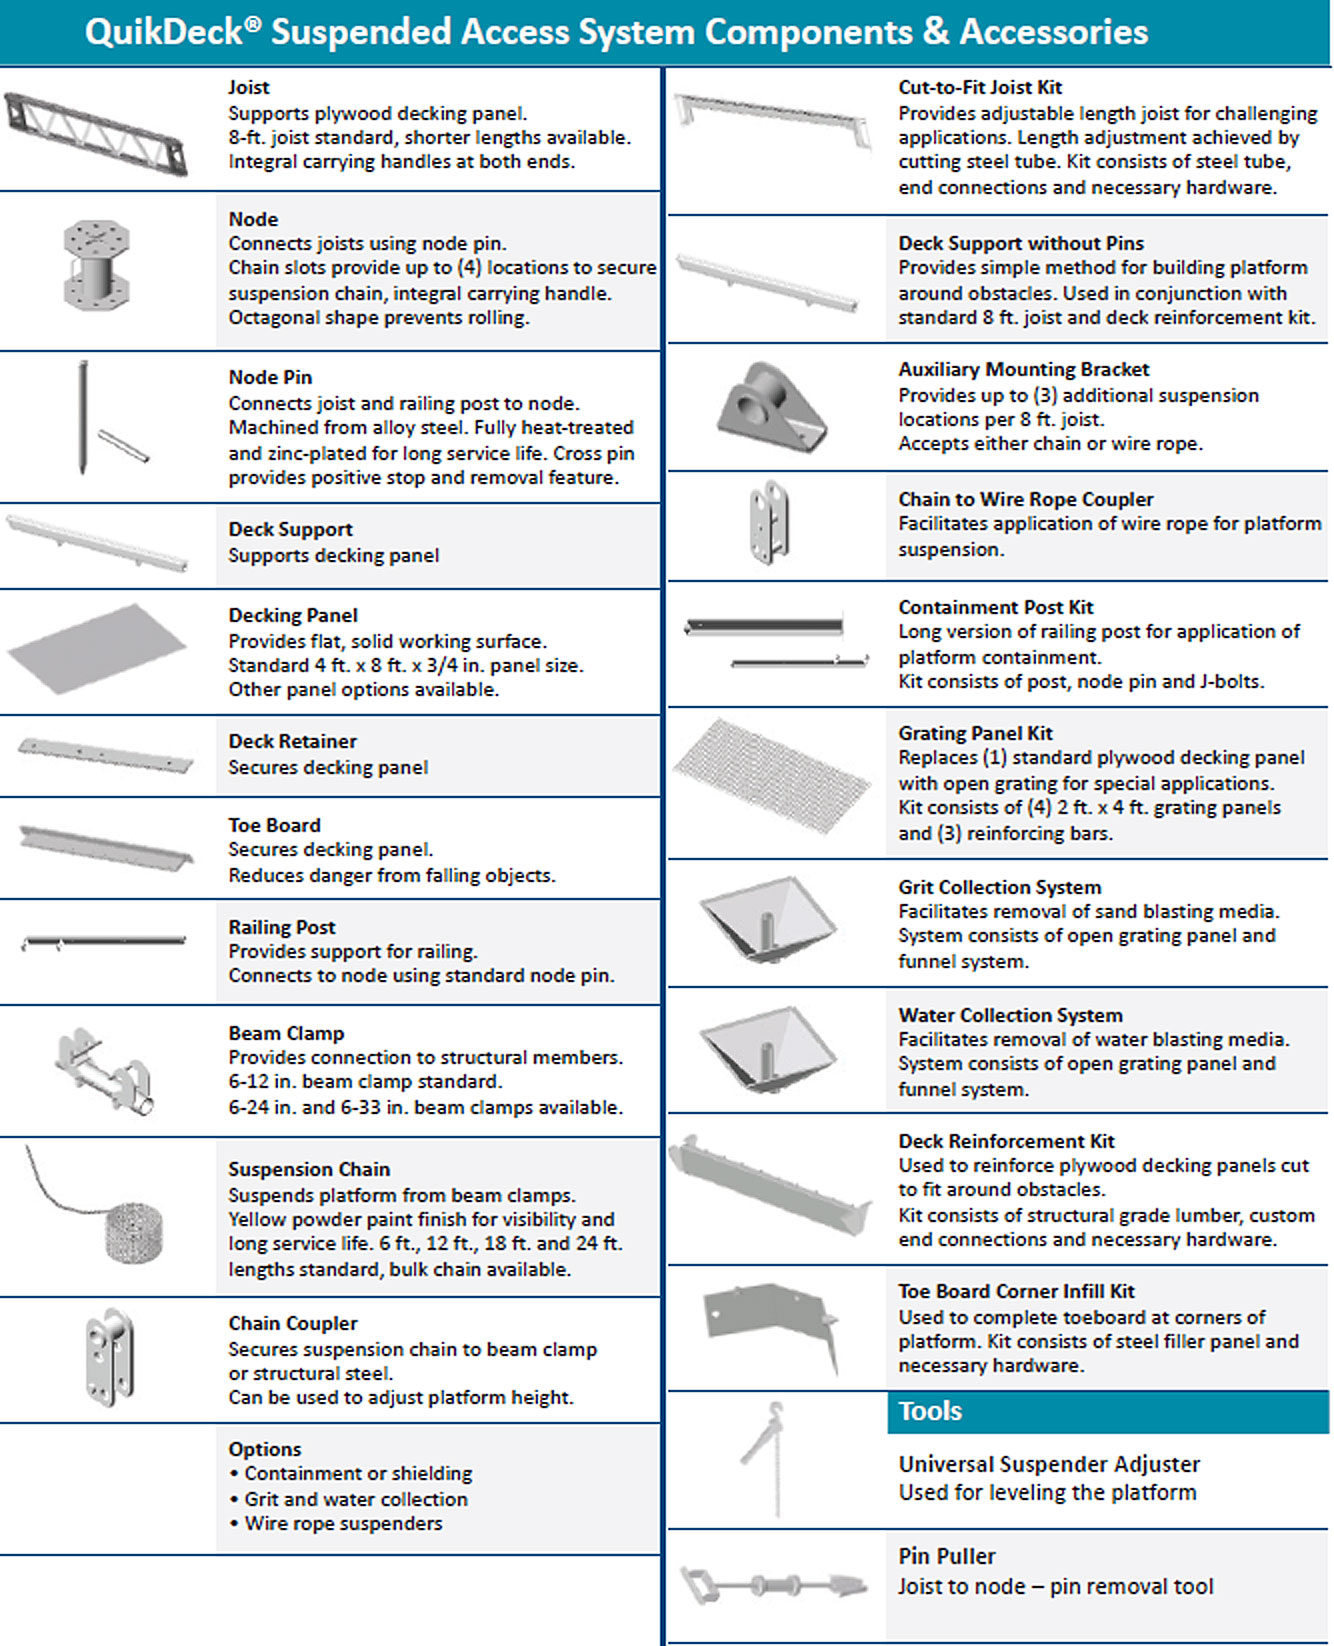 QuikDeck Product Information - Components and Accessories